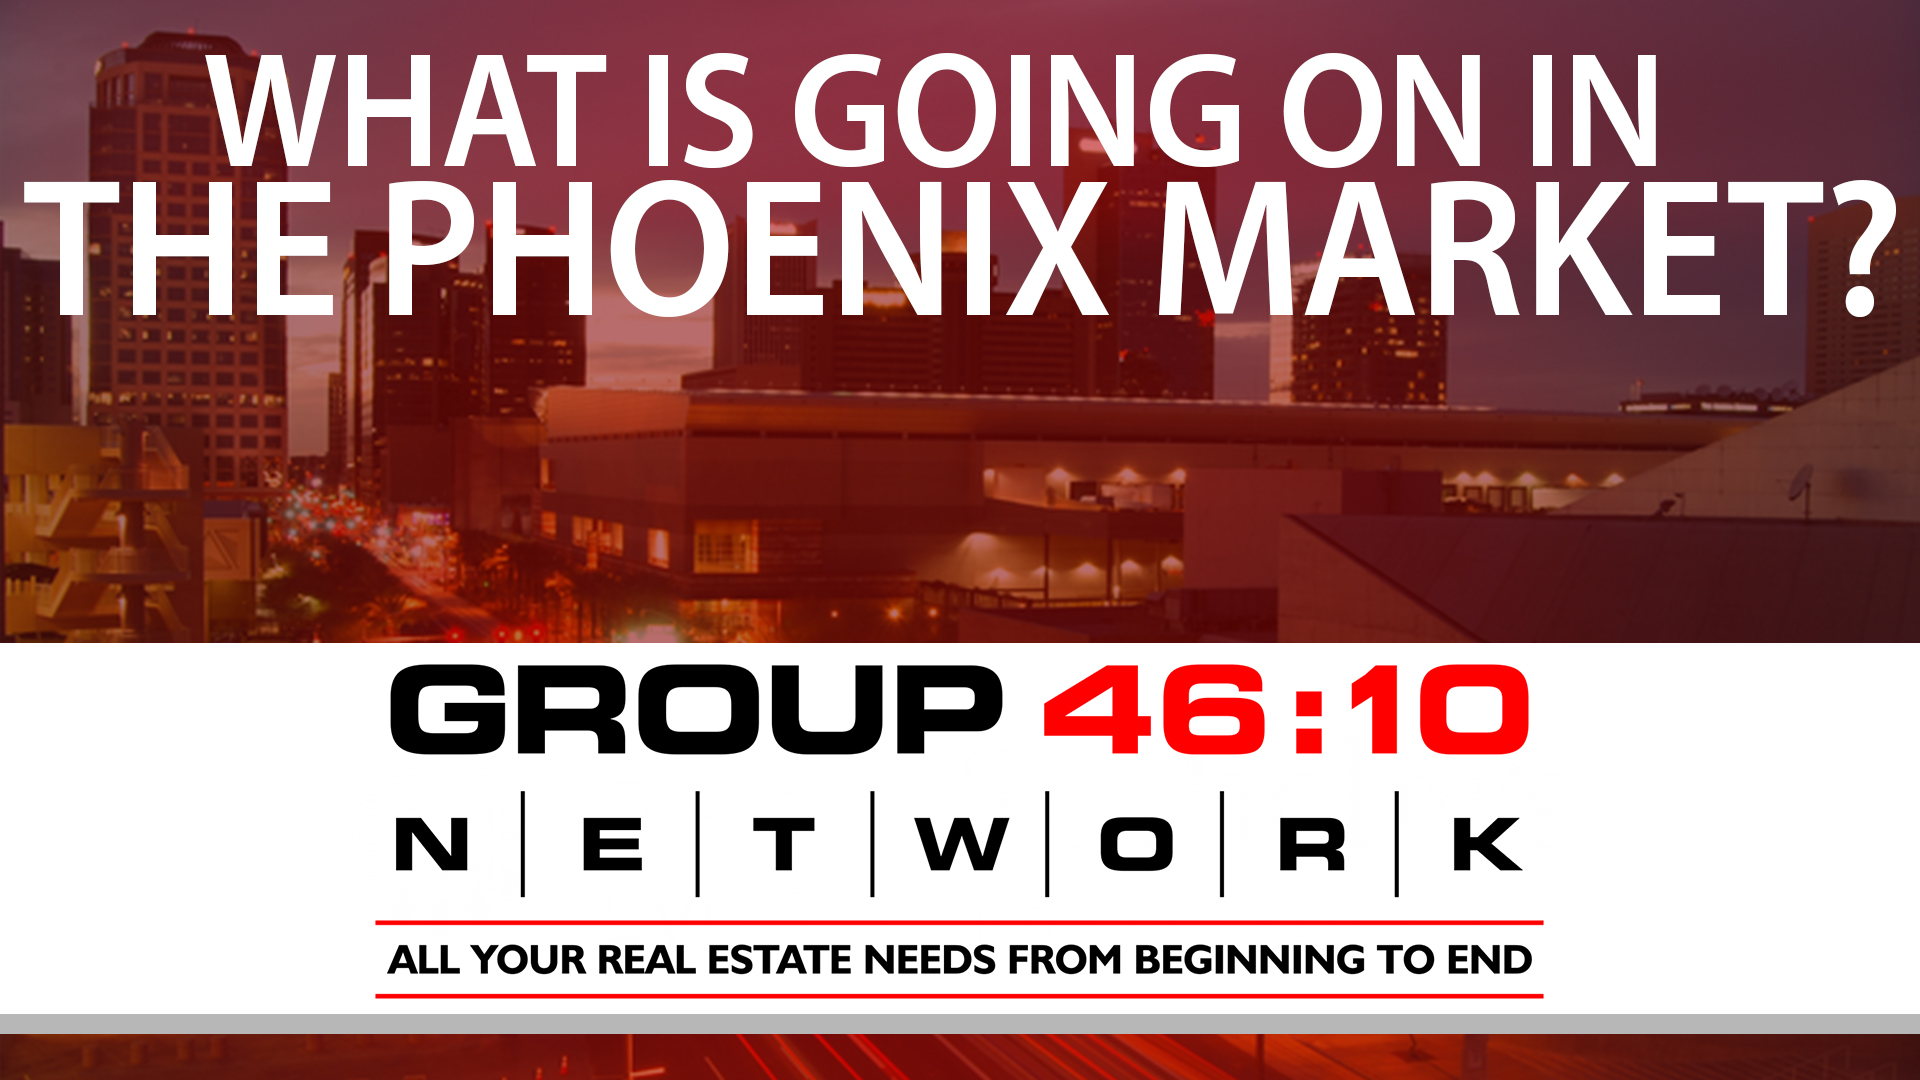 Q: What's Going on in the Phoenix Real Estate Market?